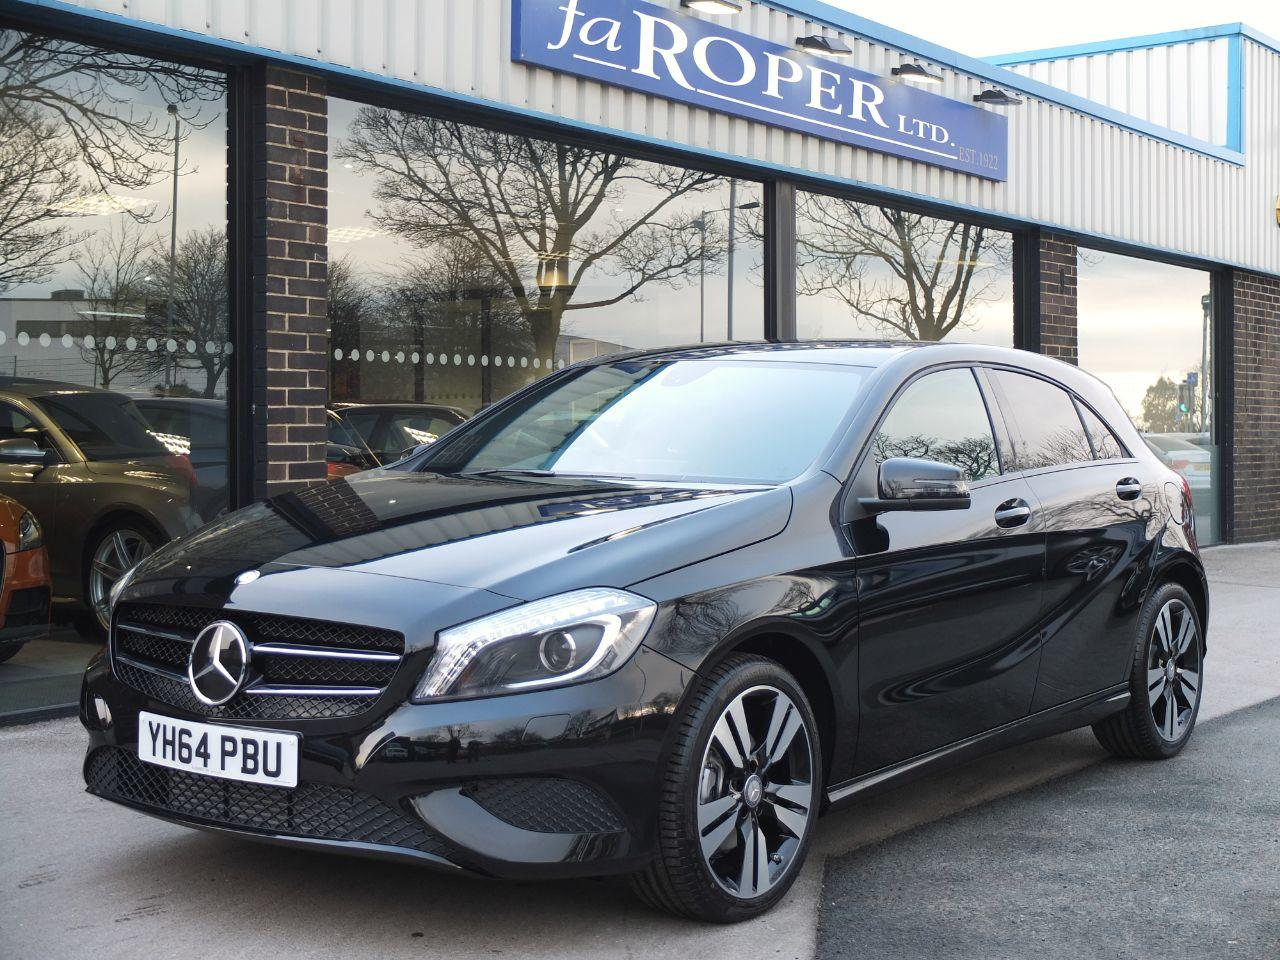 Mercedes-Benz A Class A200 [2.1] CDI Sport Auto. Night Package, Delivery Miles Hatchback Diesel Cosmos Black MetallicMercedes-Benz A Class A200 [2.1] CDI Sport Auto. Night Package, Delivery Miles Hatchback Diesel Cosmos Black Metallic at fa Roper Ltd Bradford